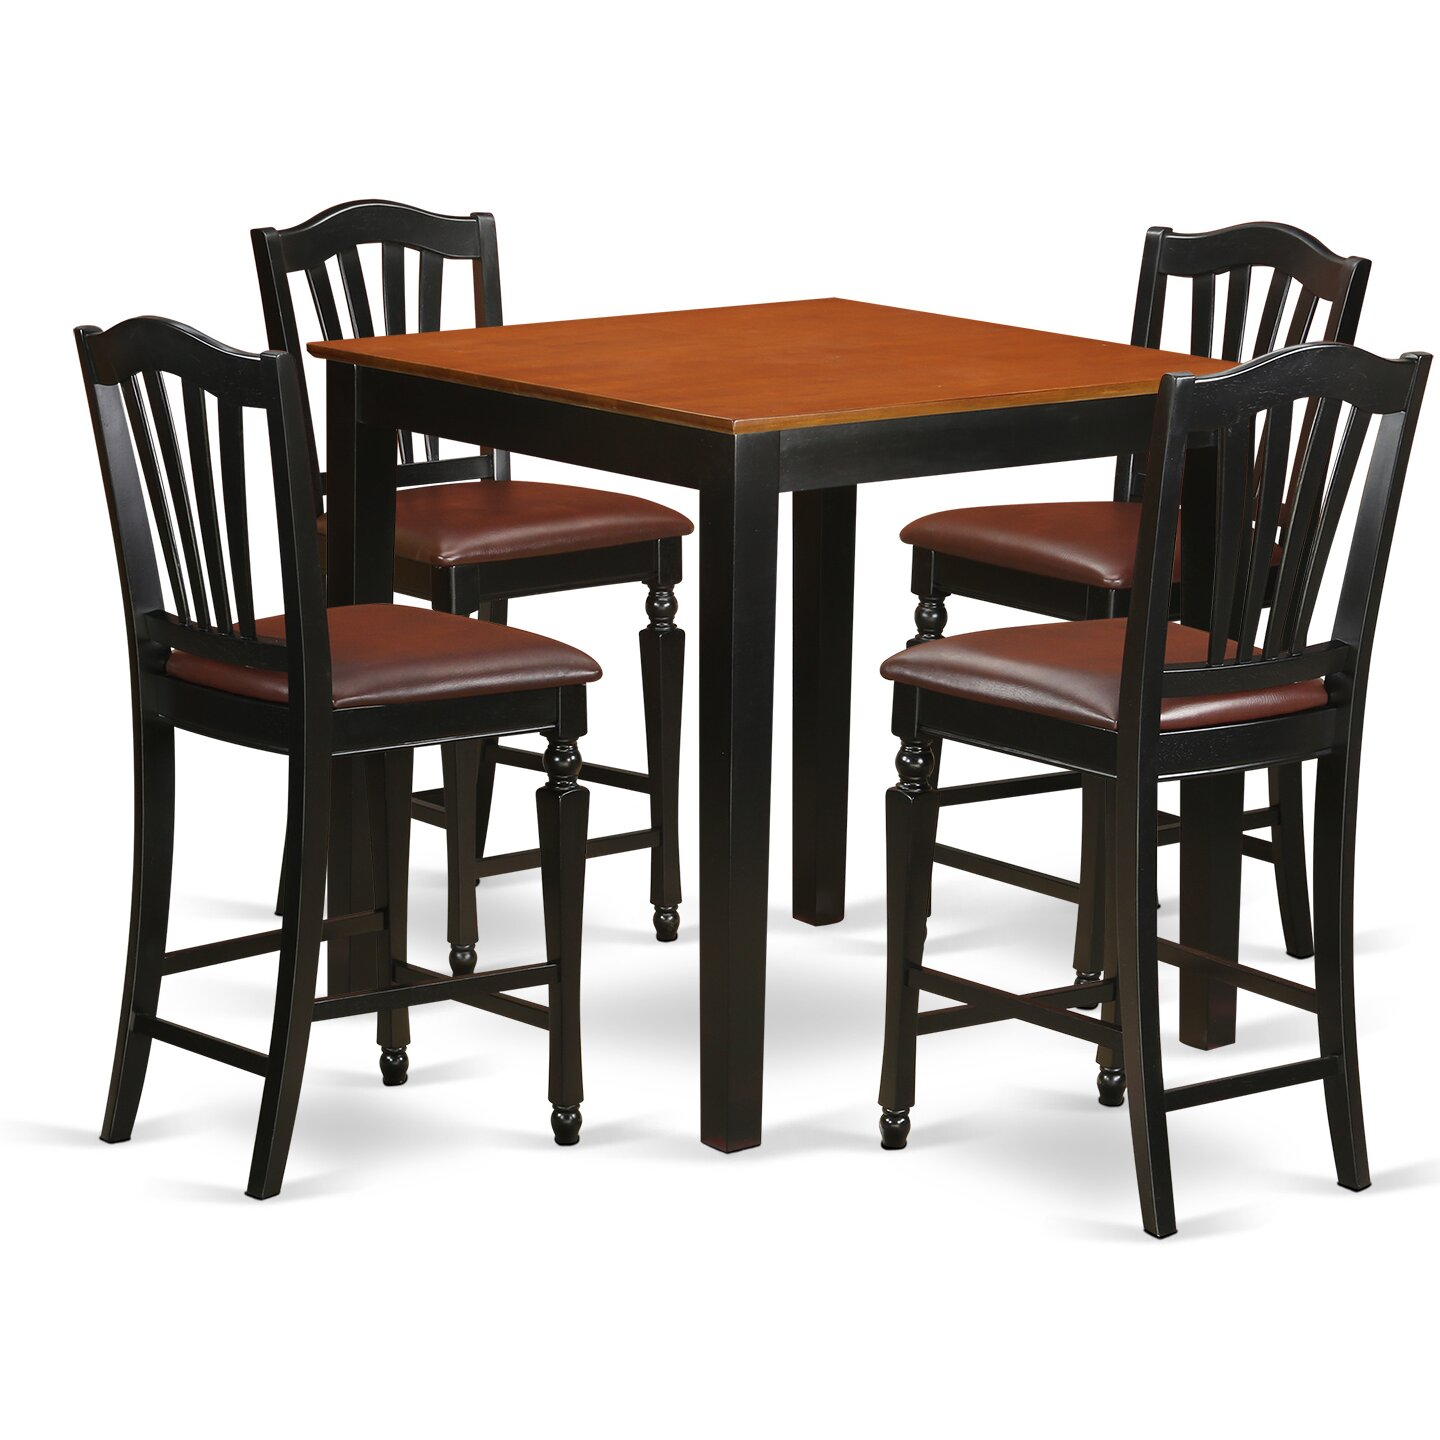 east west 5 piece counter height pub table set wayfair. Black Bedroom Furniture Sets. Home Design Ideas